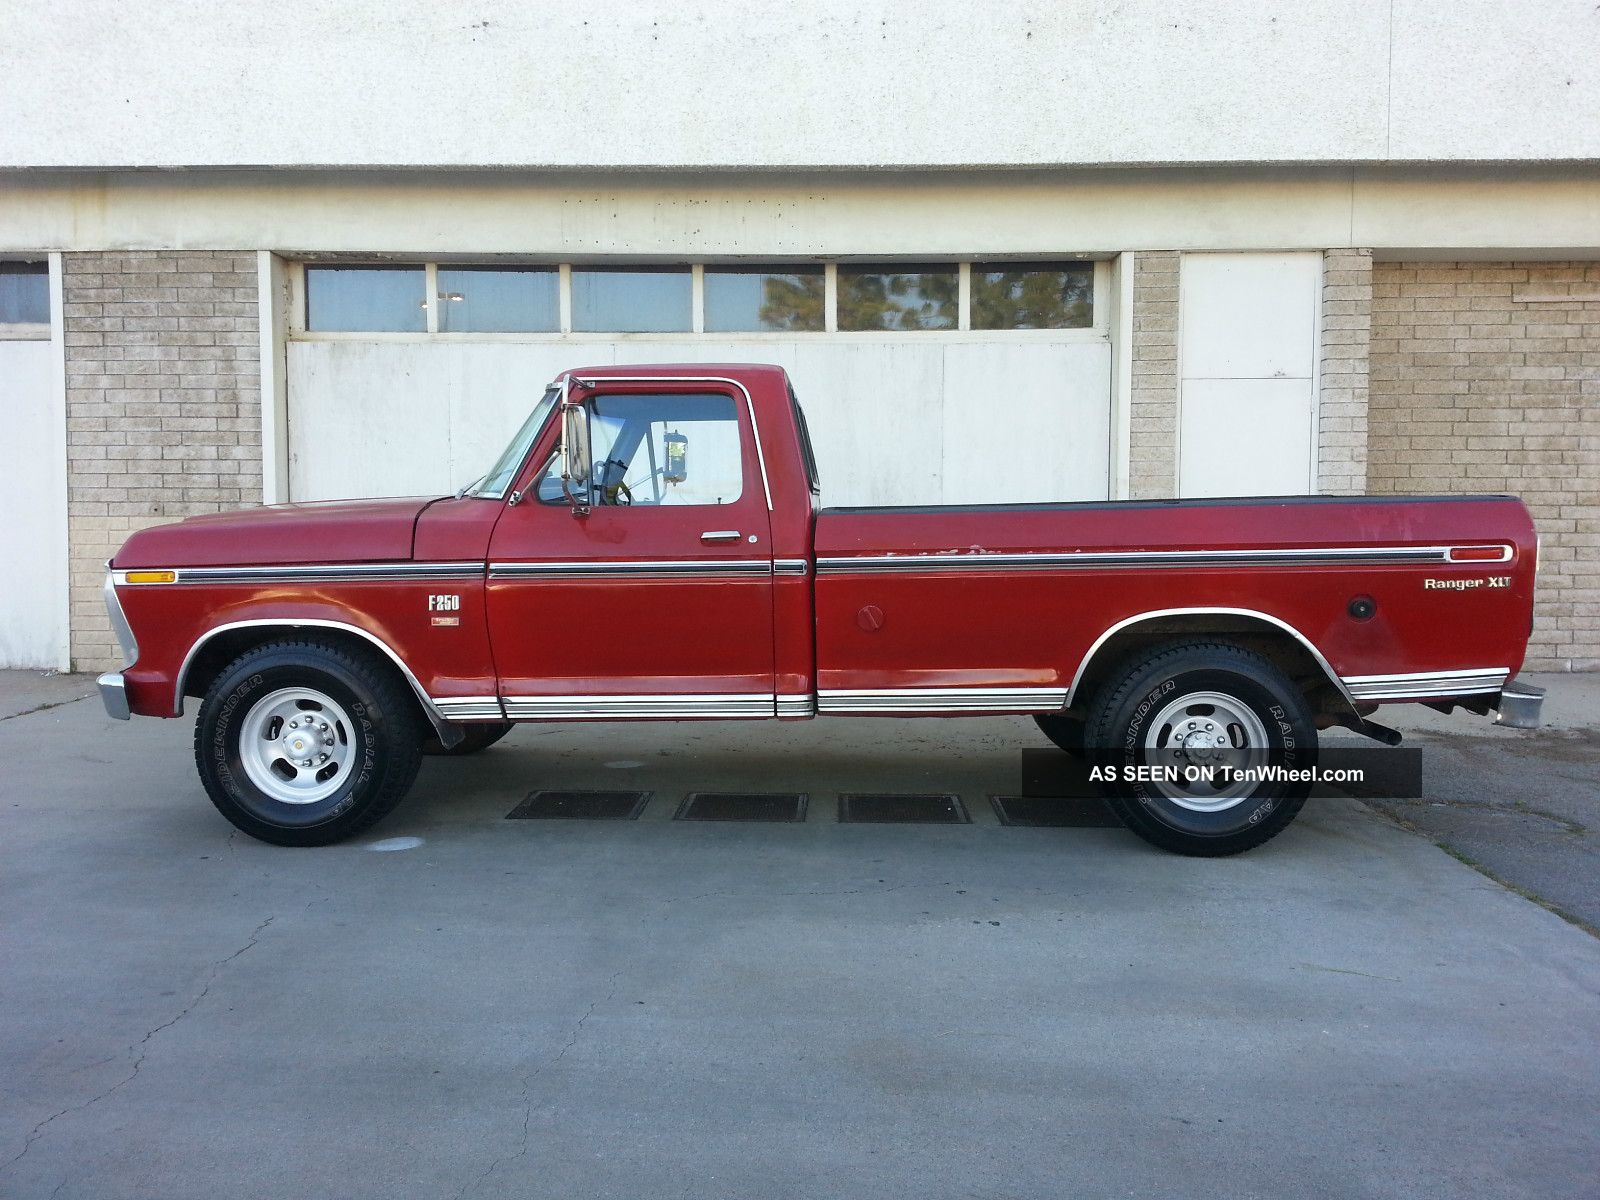 1976 Ford F250 Ranger Xlt 2wd 460 V8 Long Bed Automatic 76 F 250 1970 Highboy 4x4